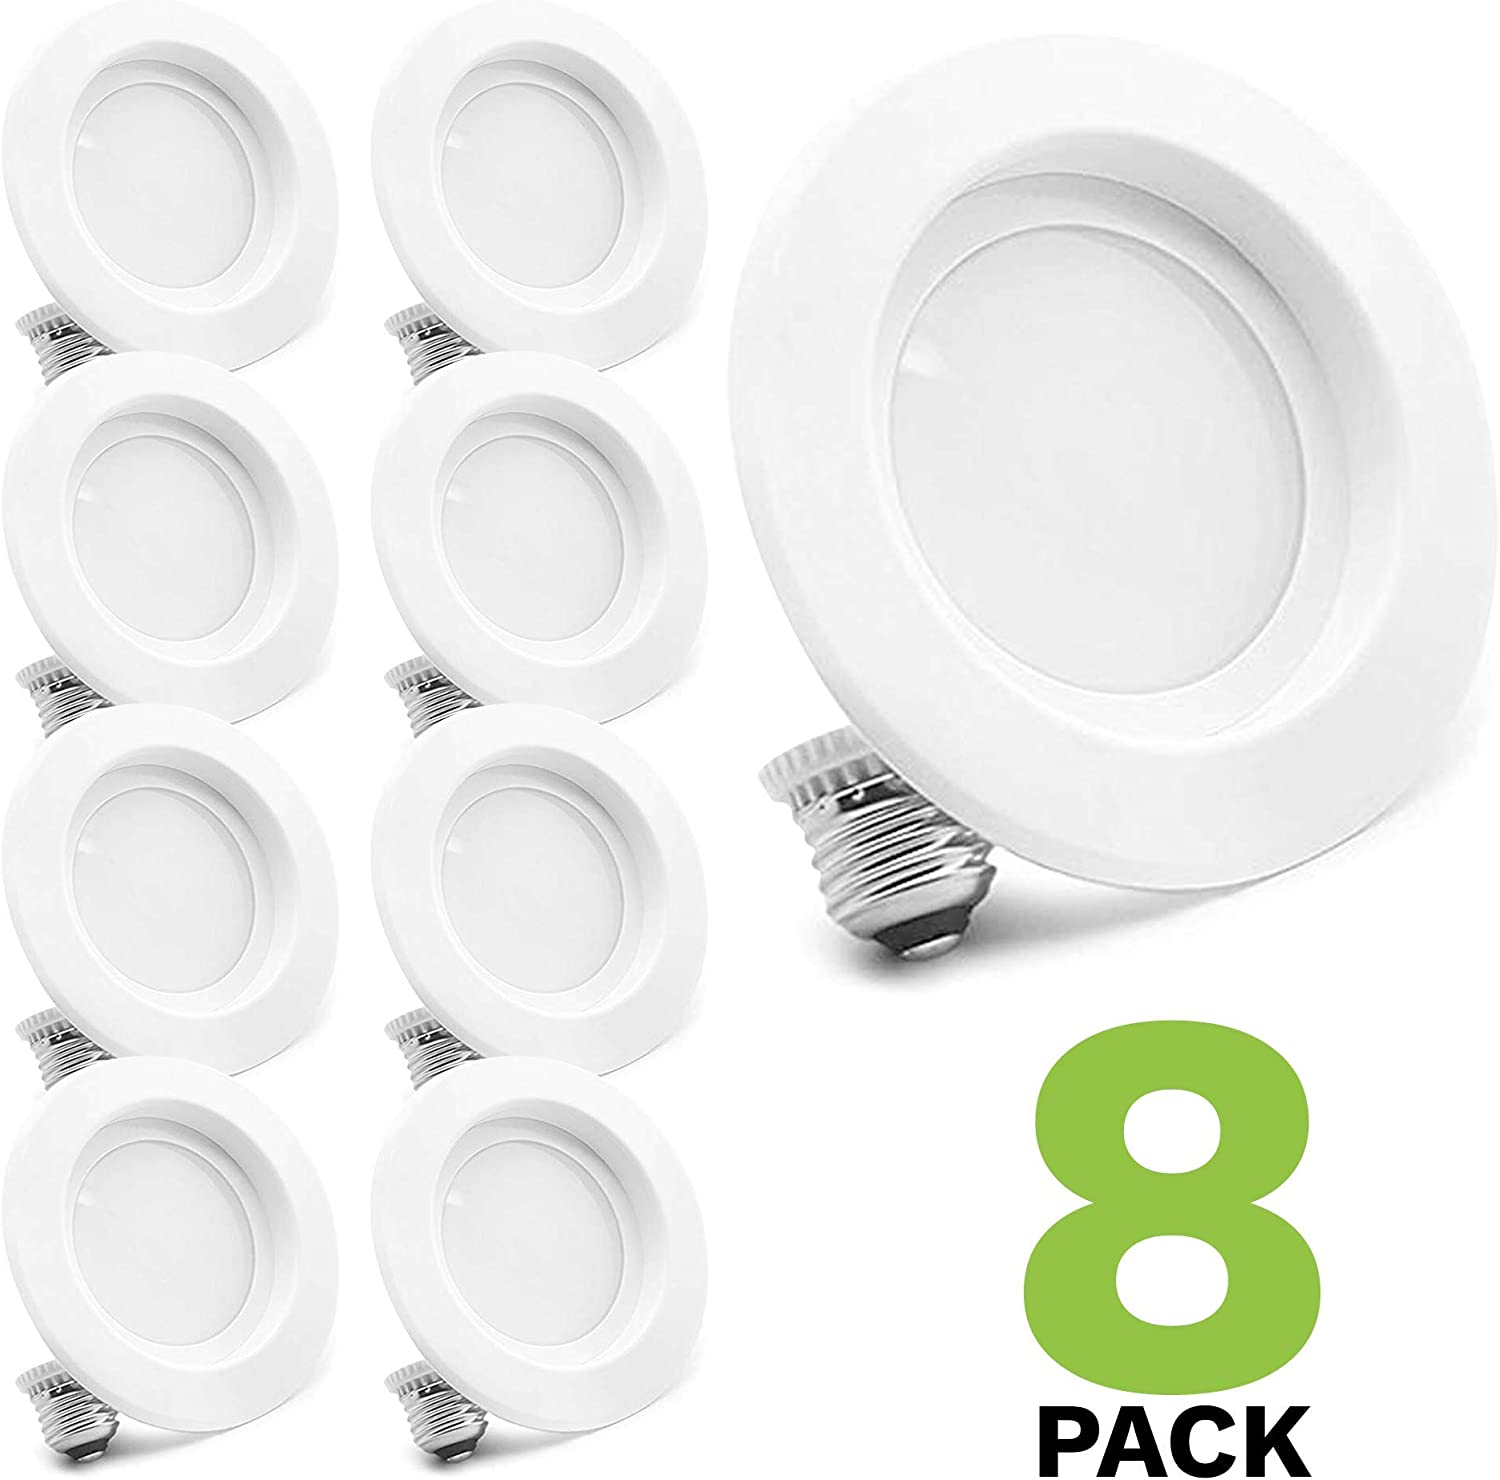 4 LED Recessed Lighting Pack of 8 Dimmable 65W Replacement Warm White